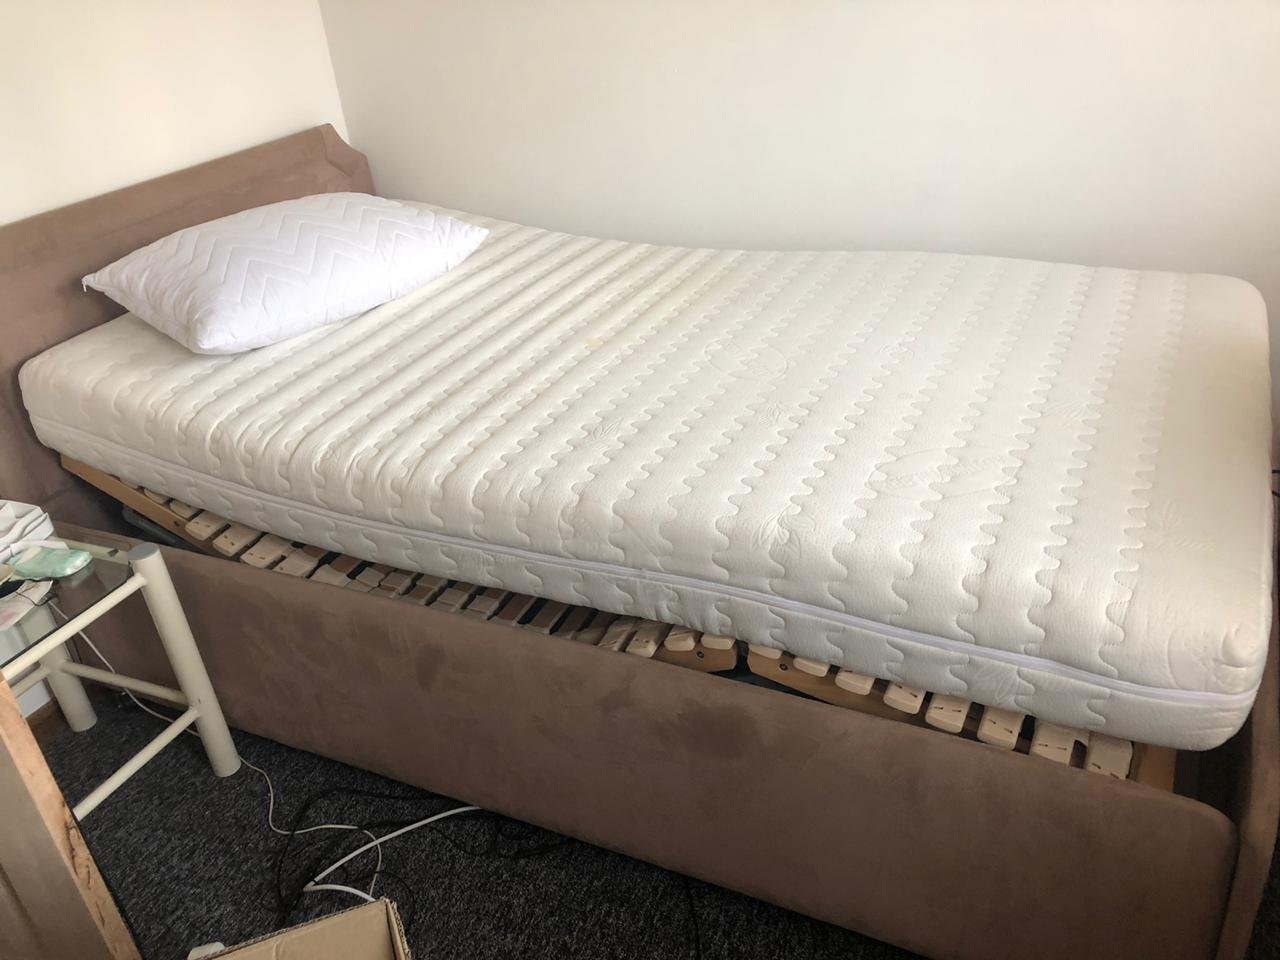 Mechanical bed